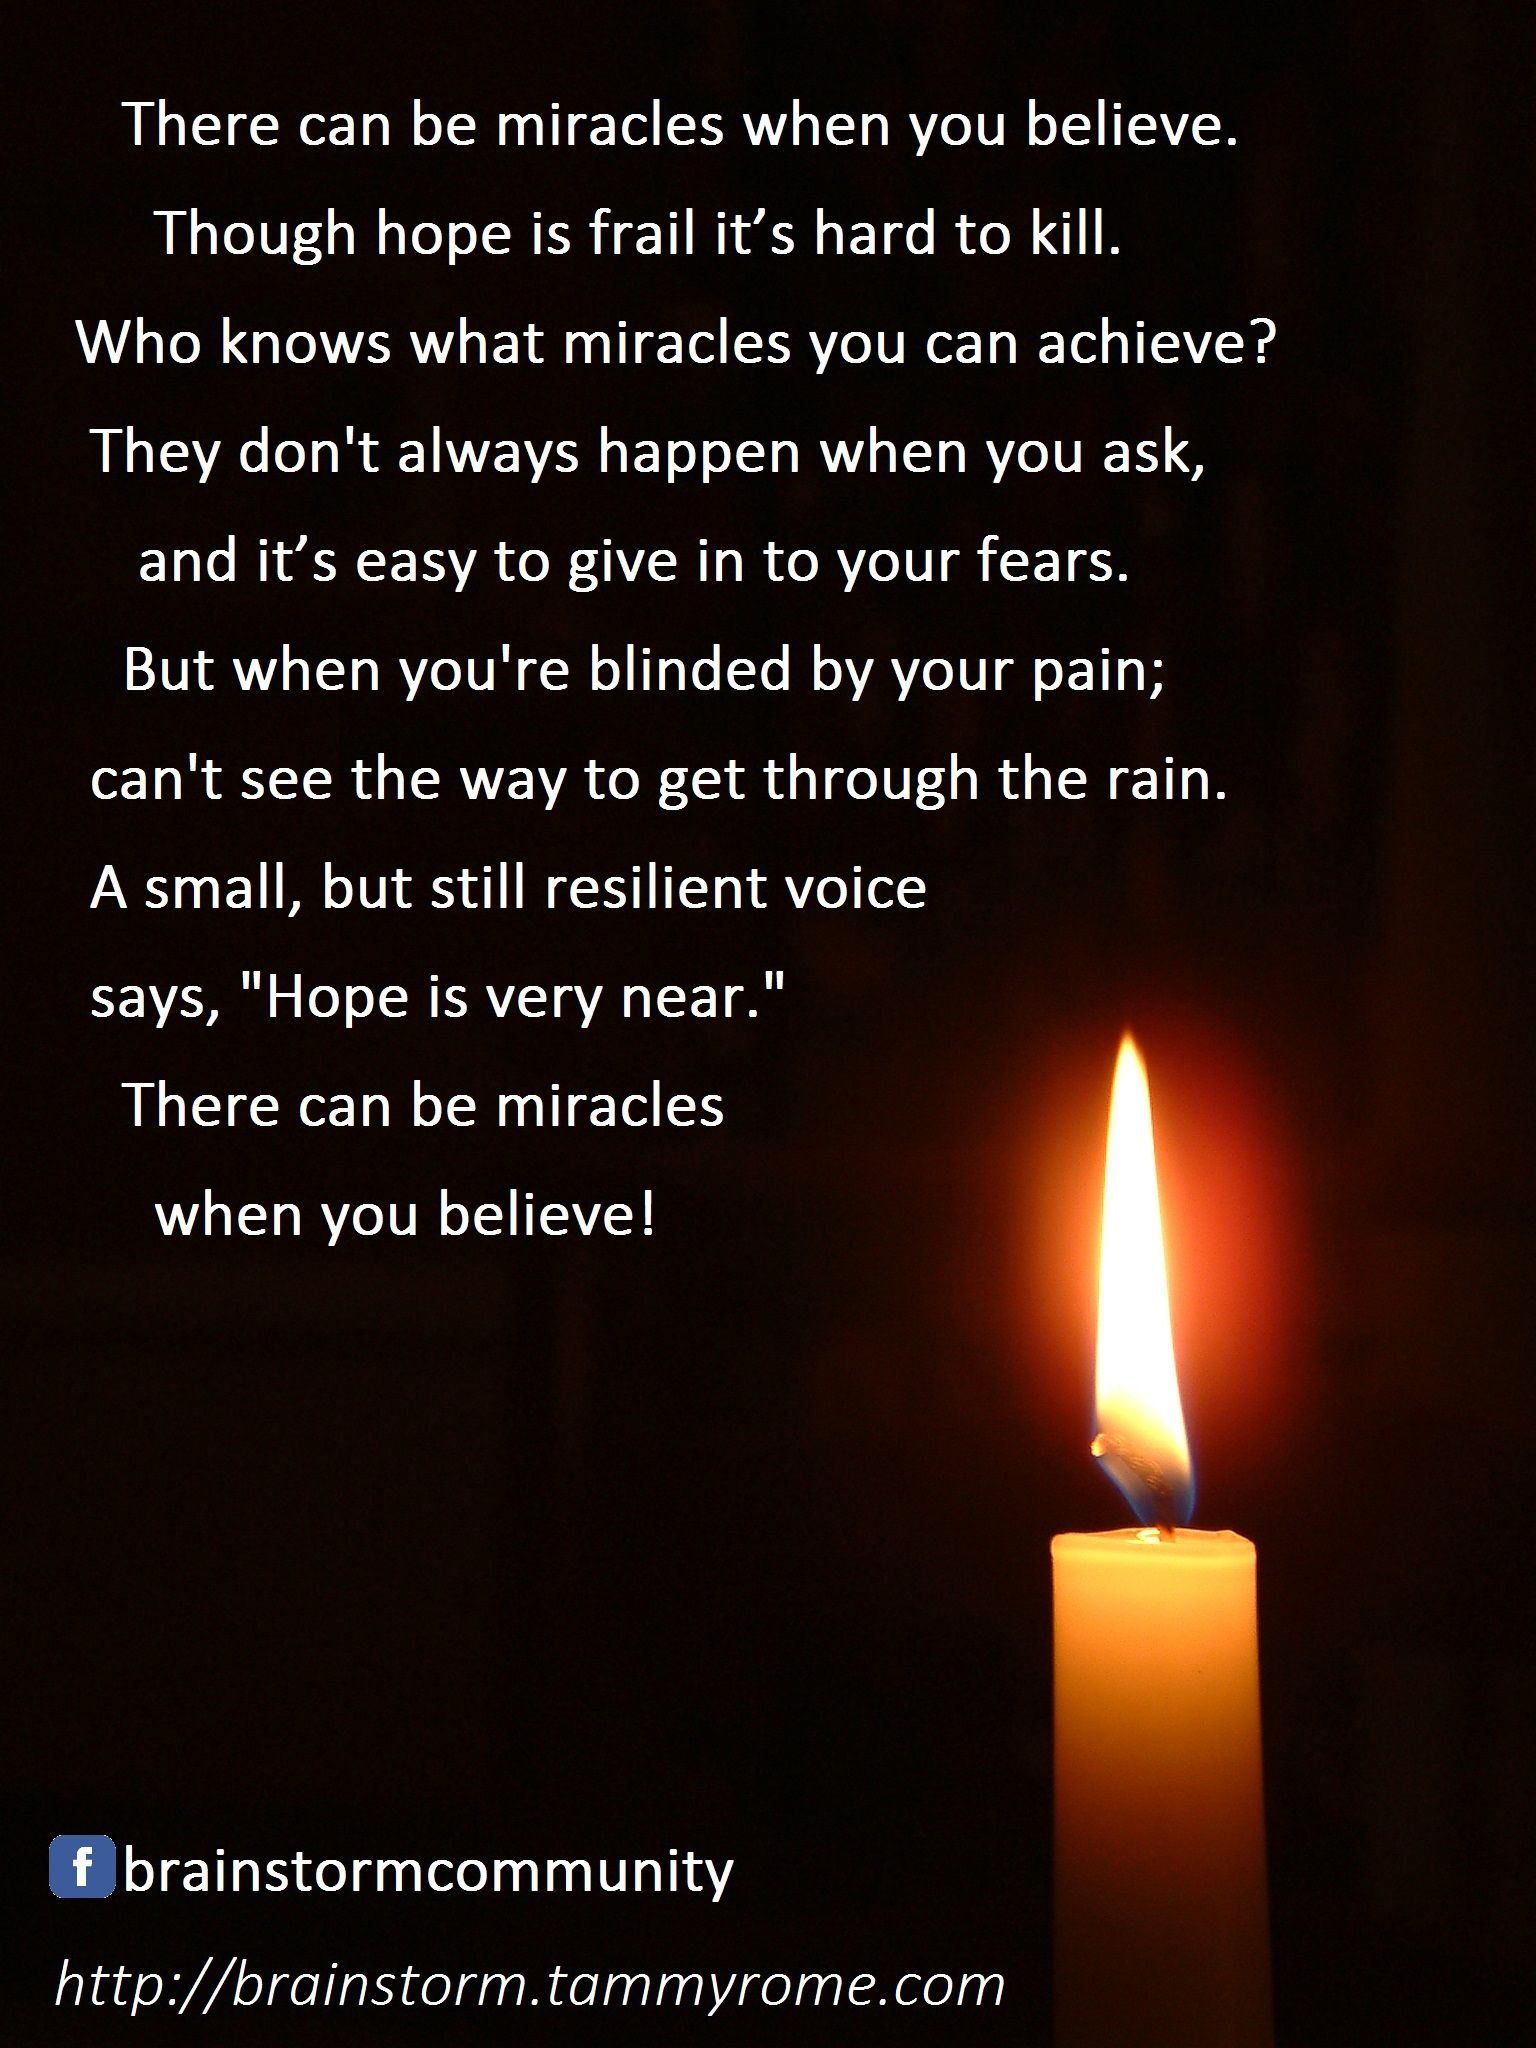 There Can Be Miracles When You Believe Quotes Quotes When You